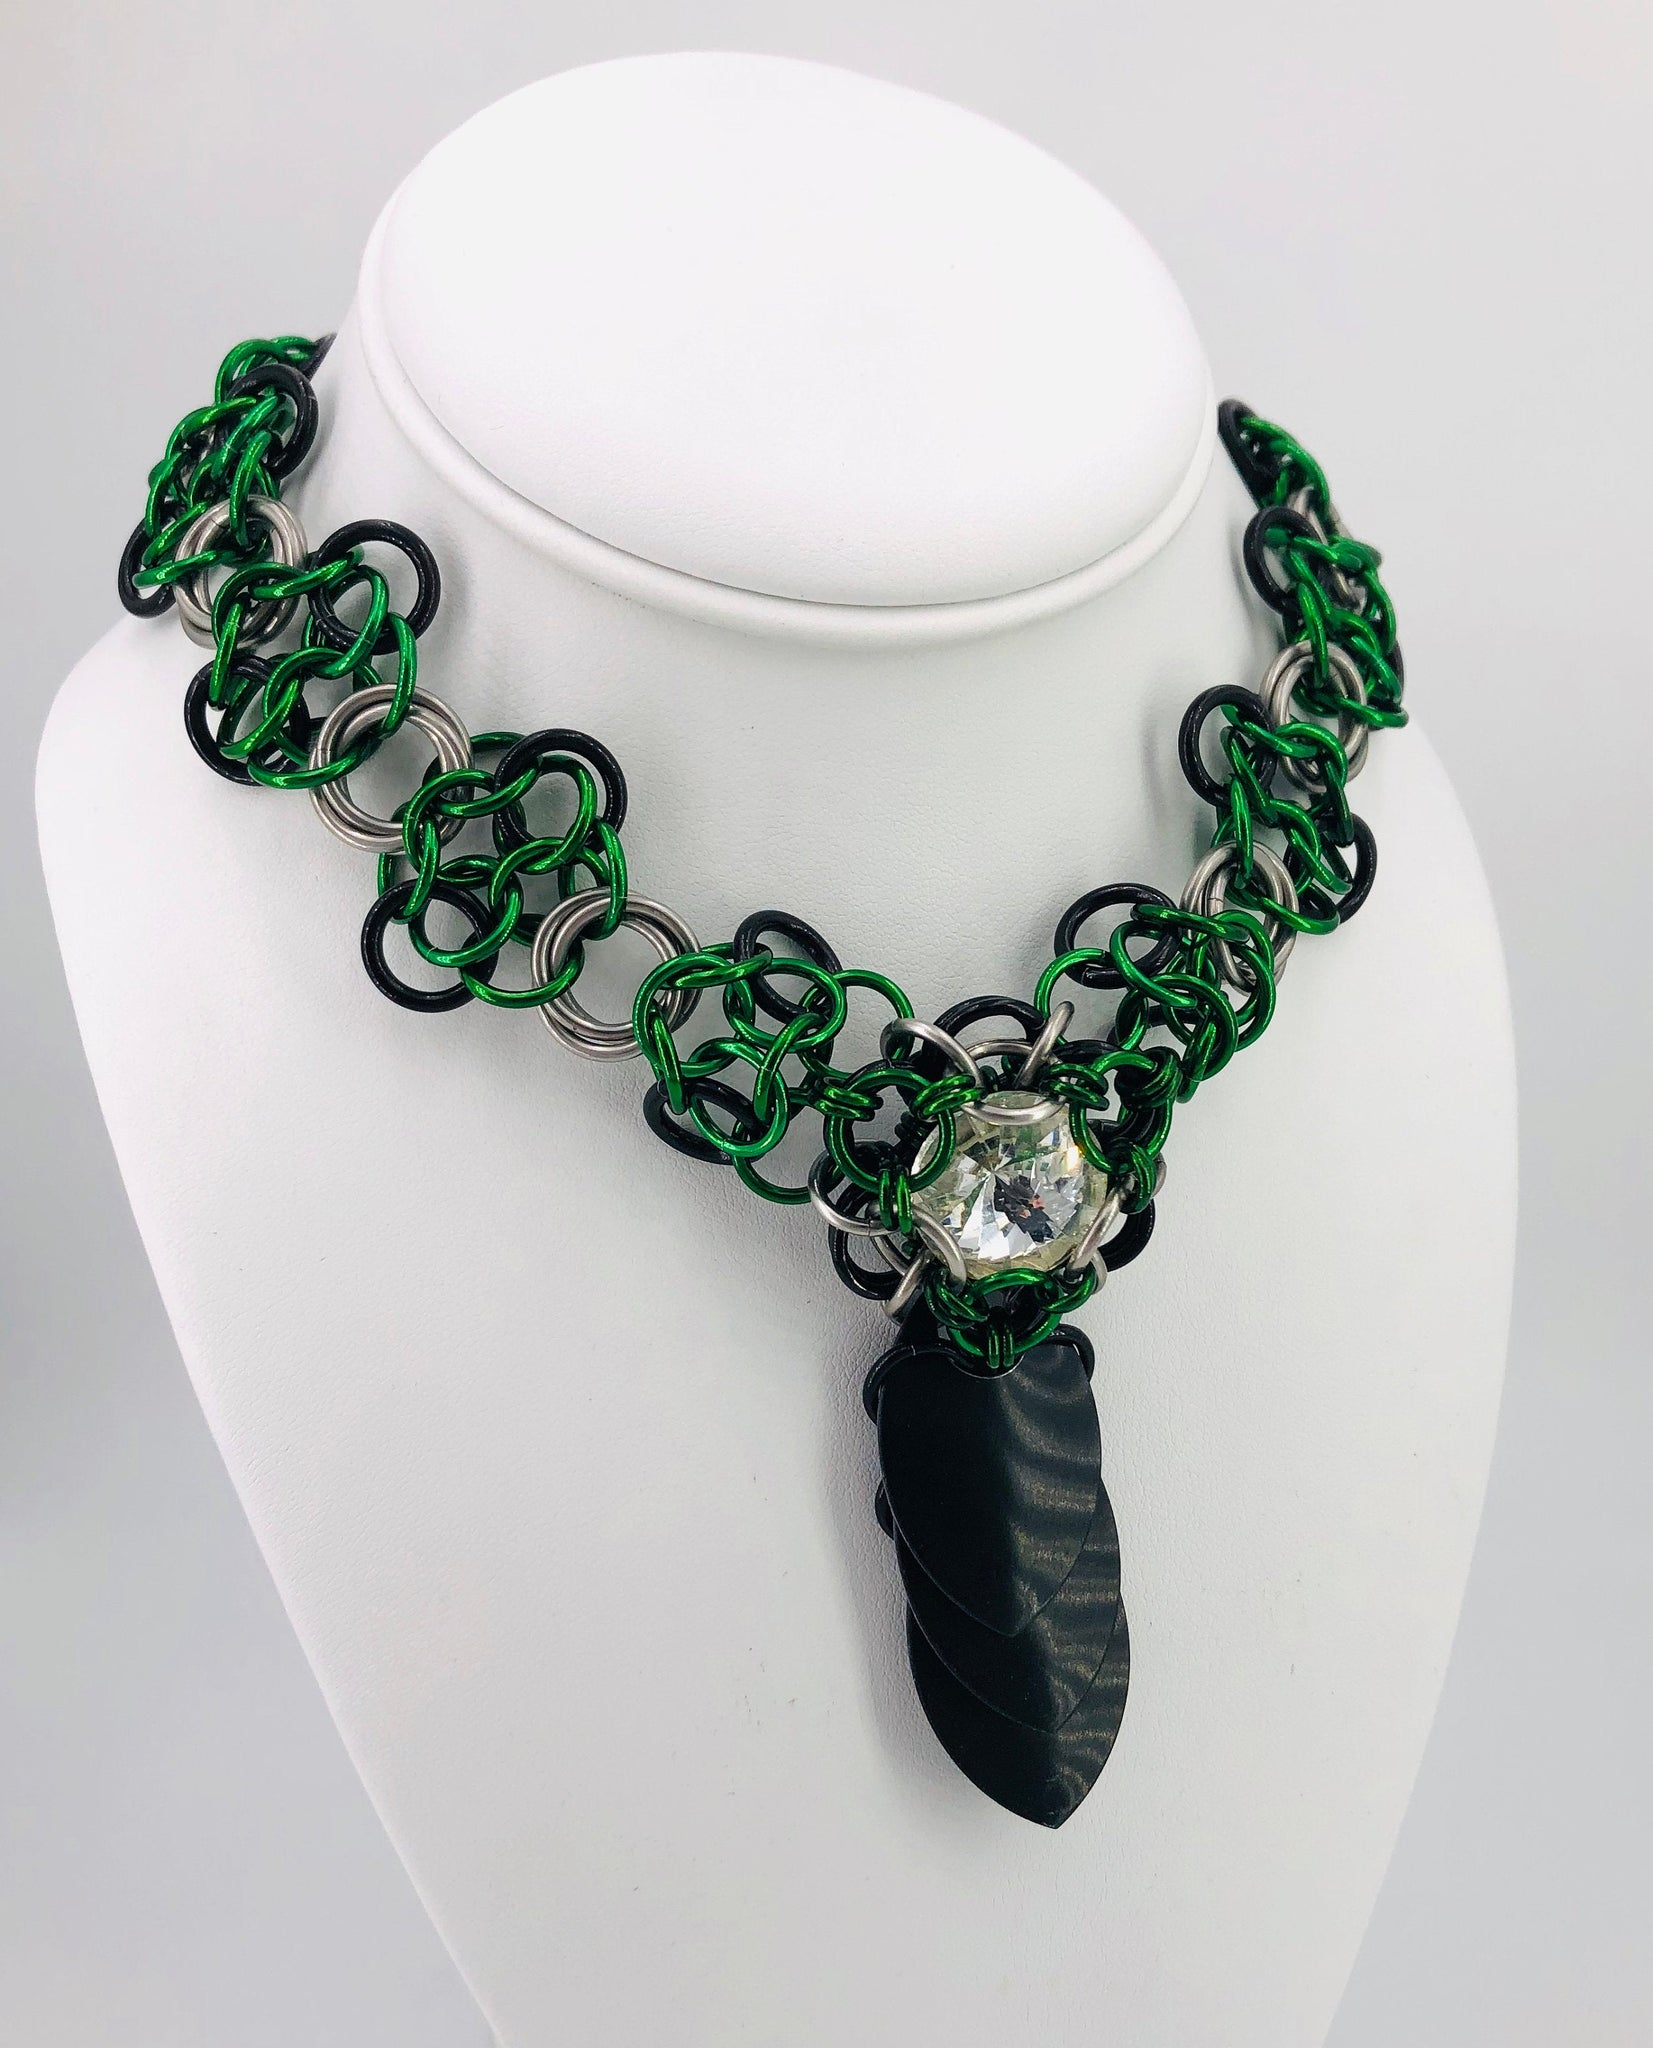 Green and Black Statement Collar Necklace with Jewel Centerpiece